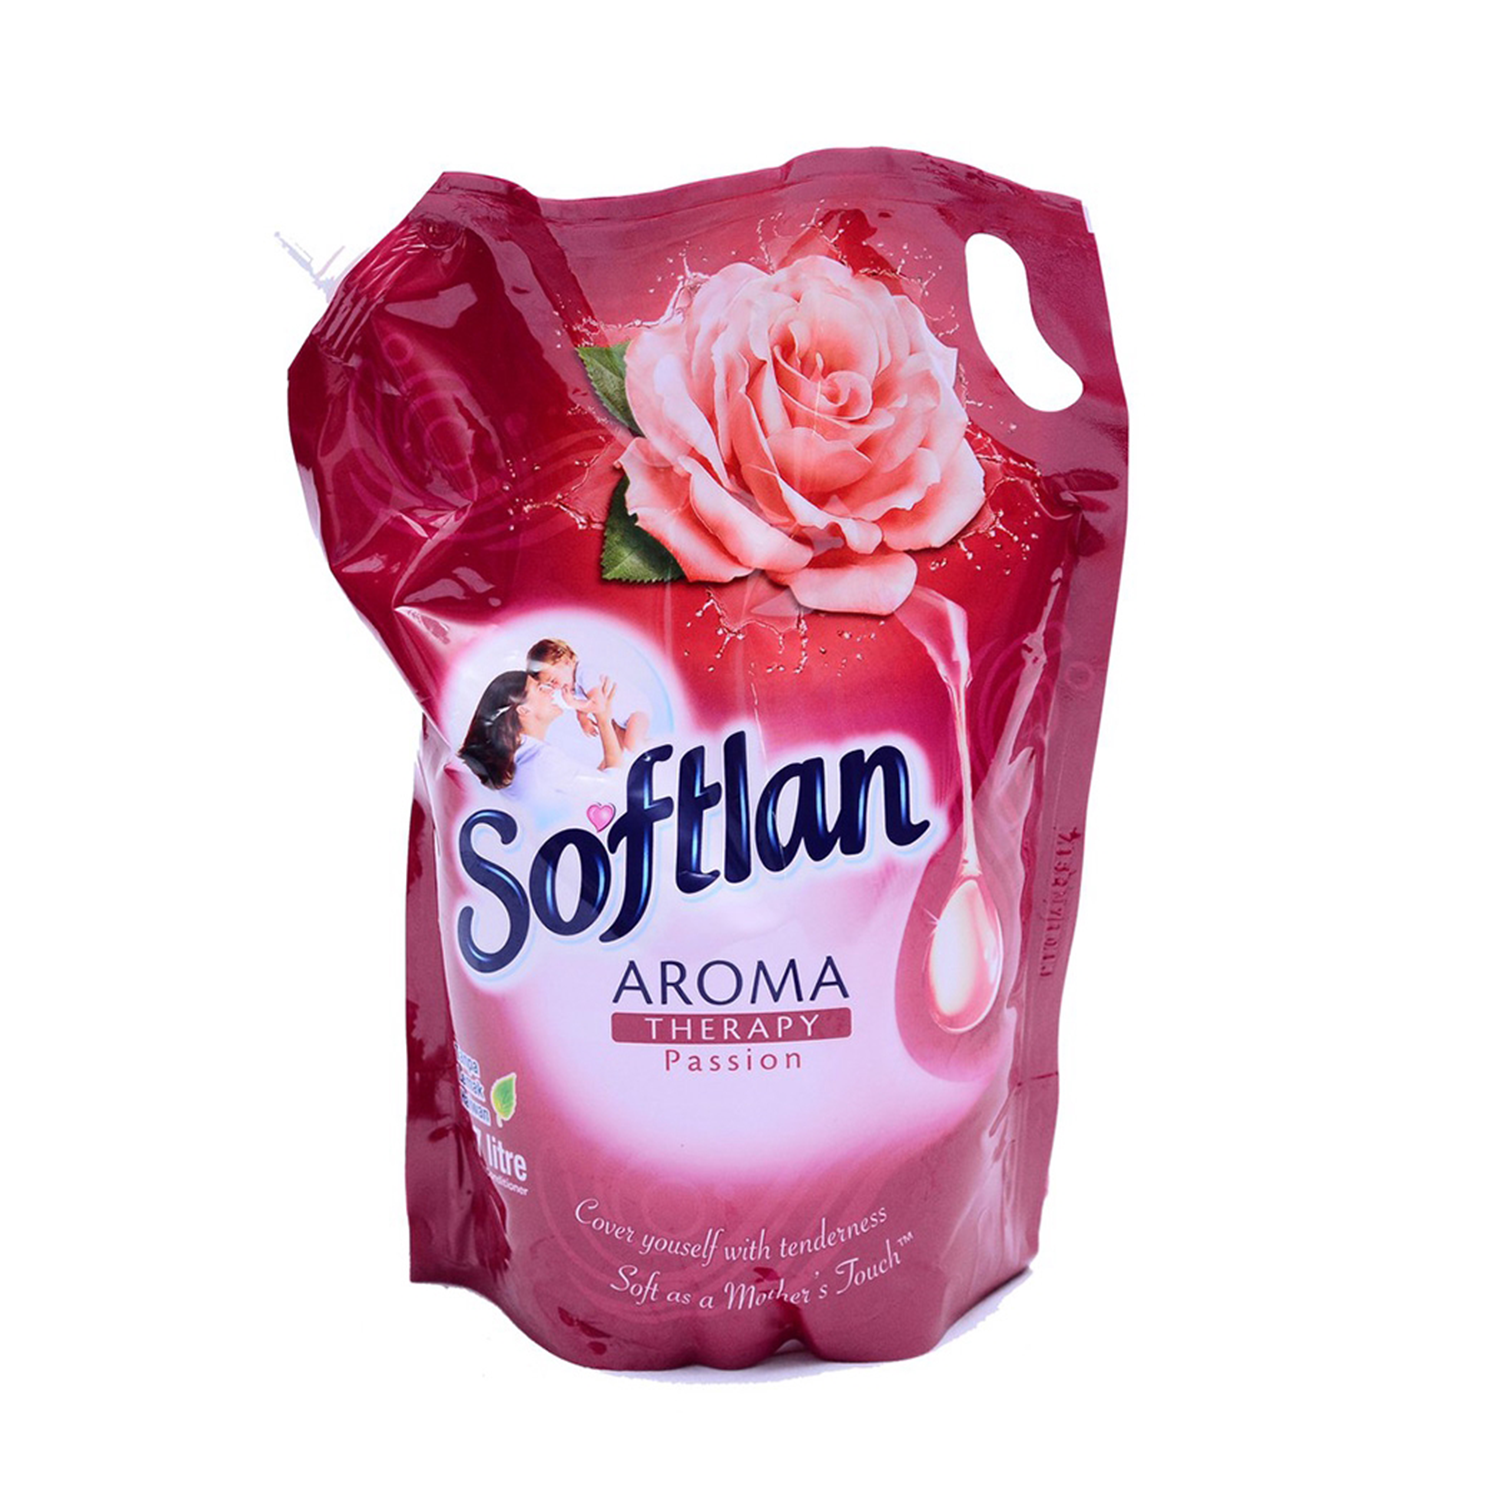 Softlan Aroma Therapy Passion 1.5L